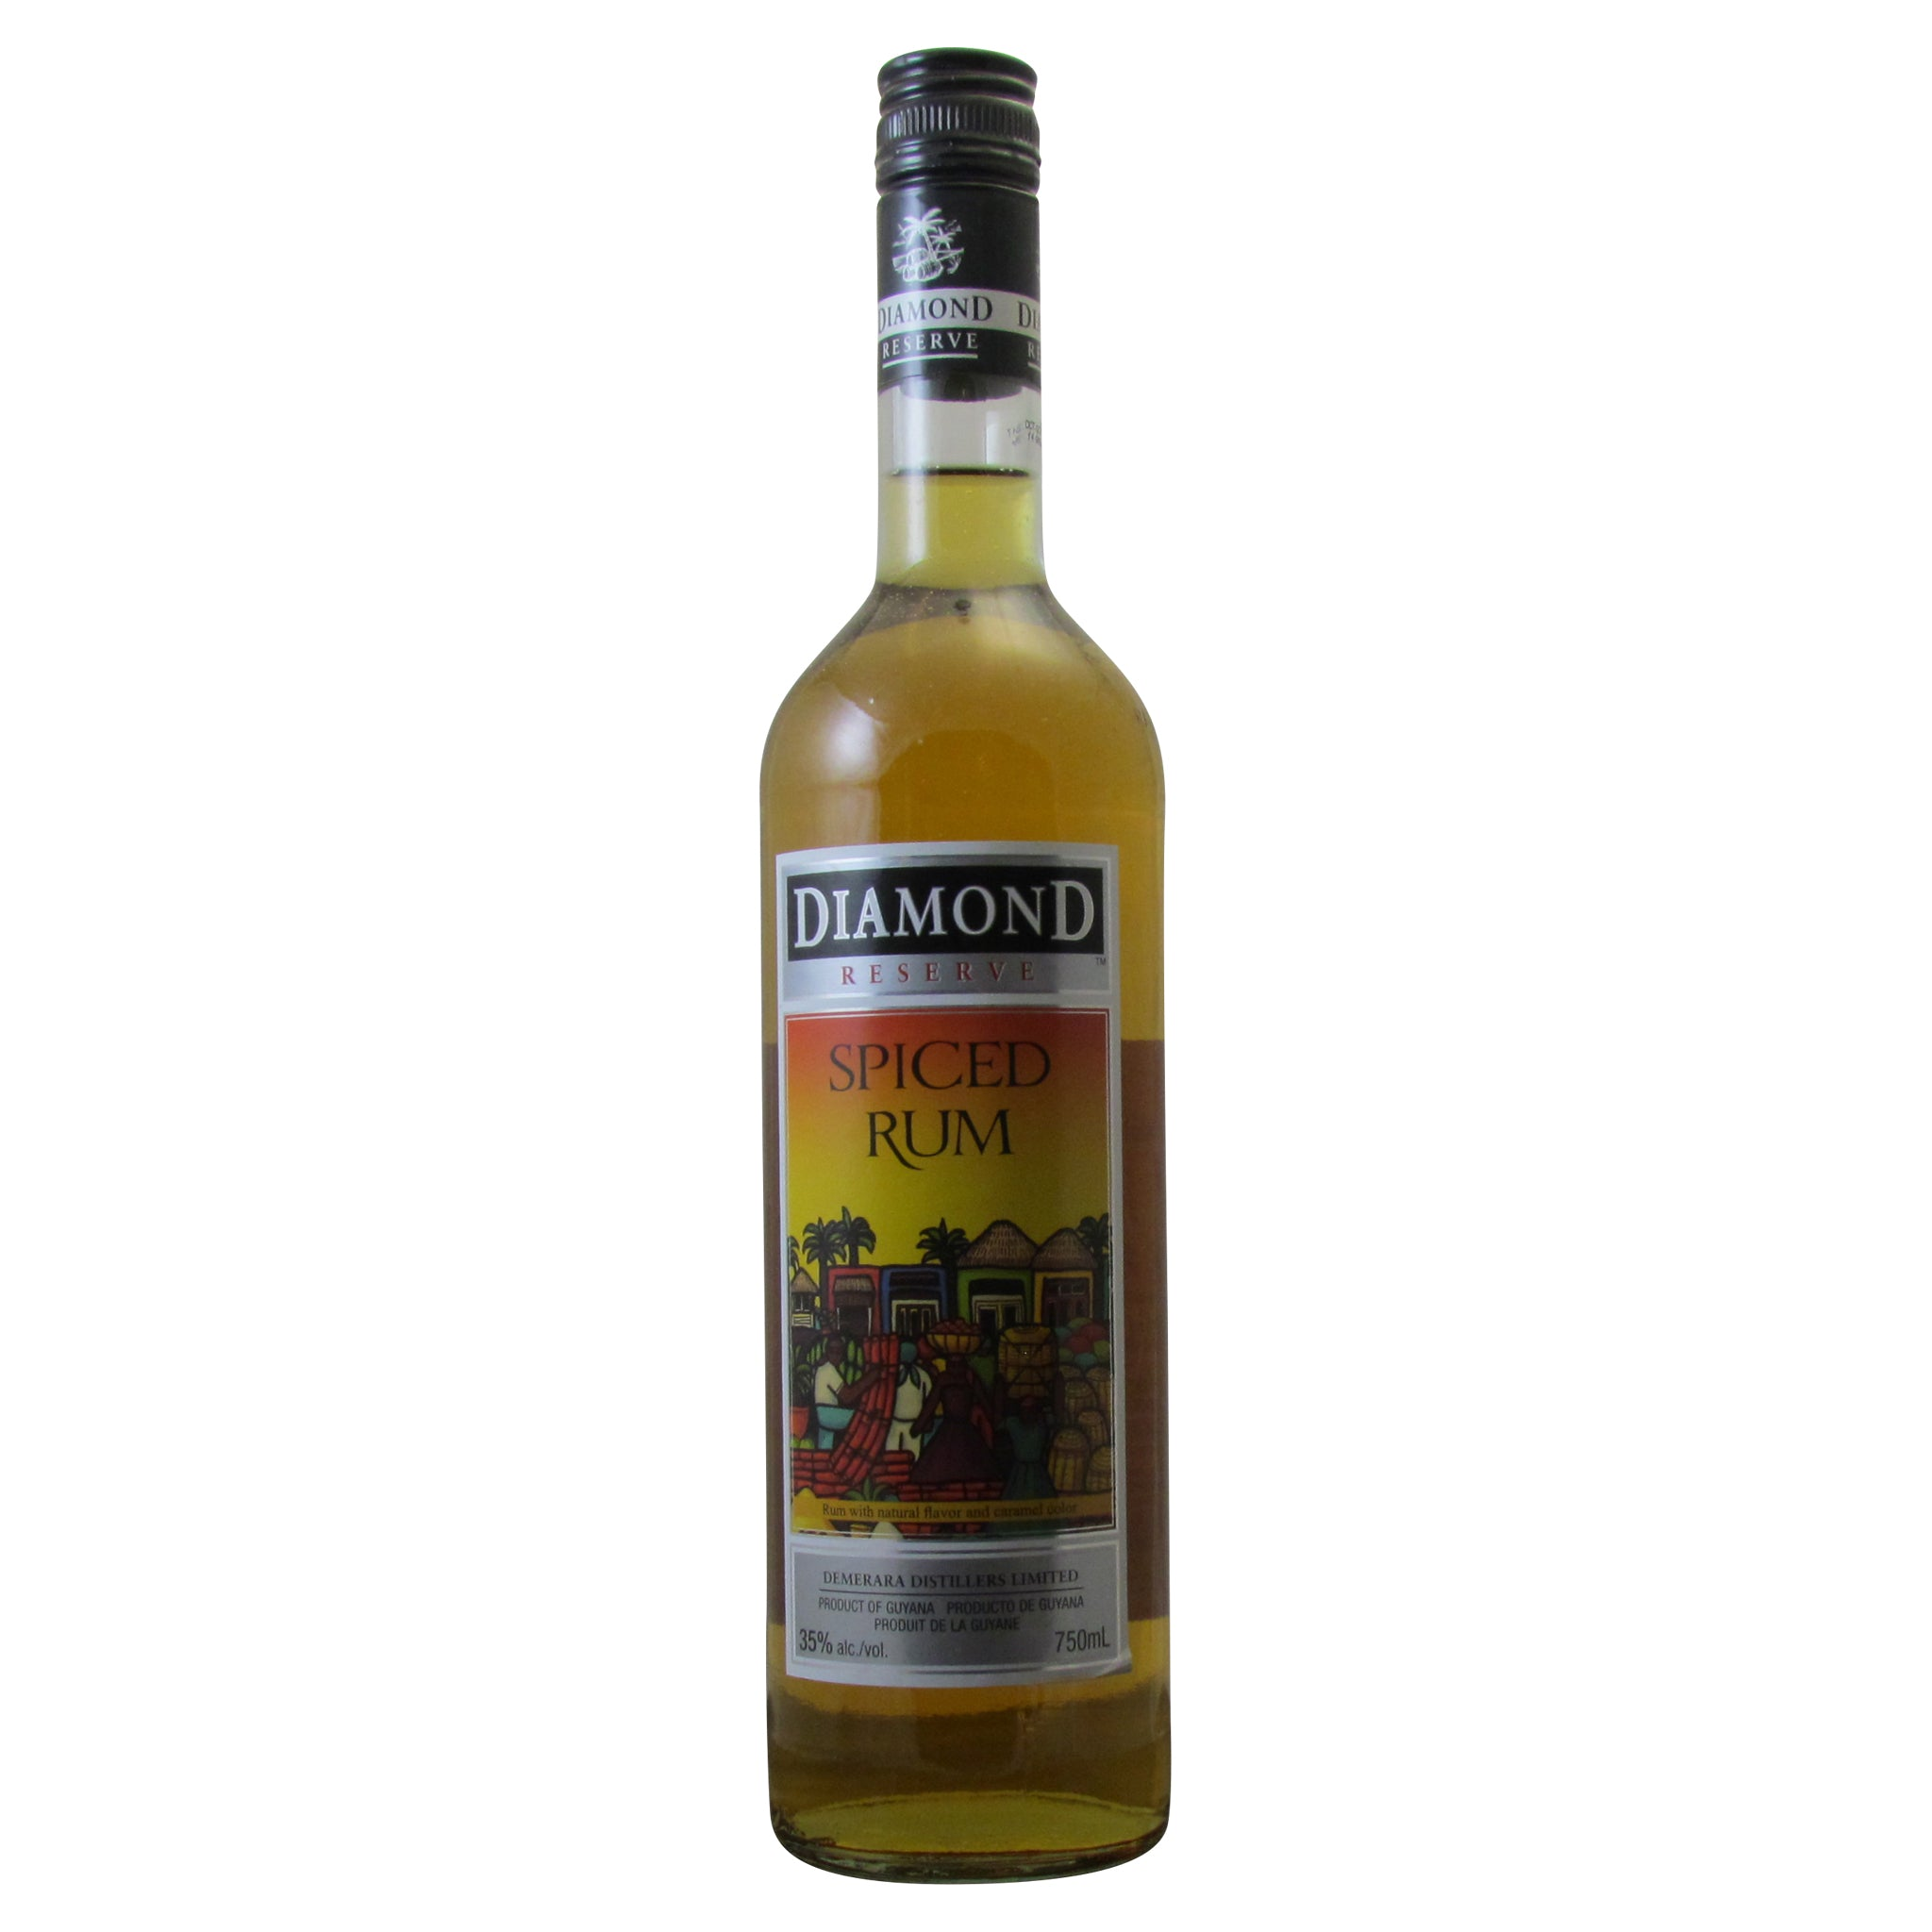 Diamond Spiced Rum